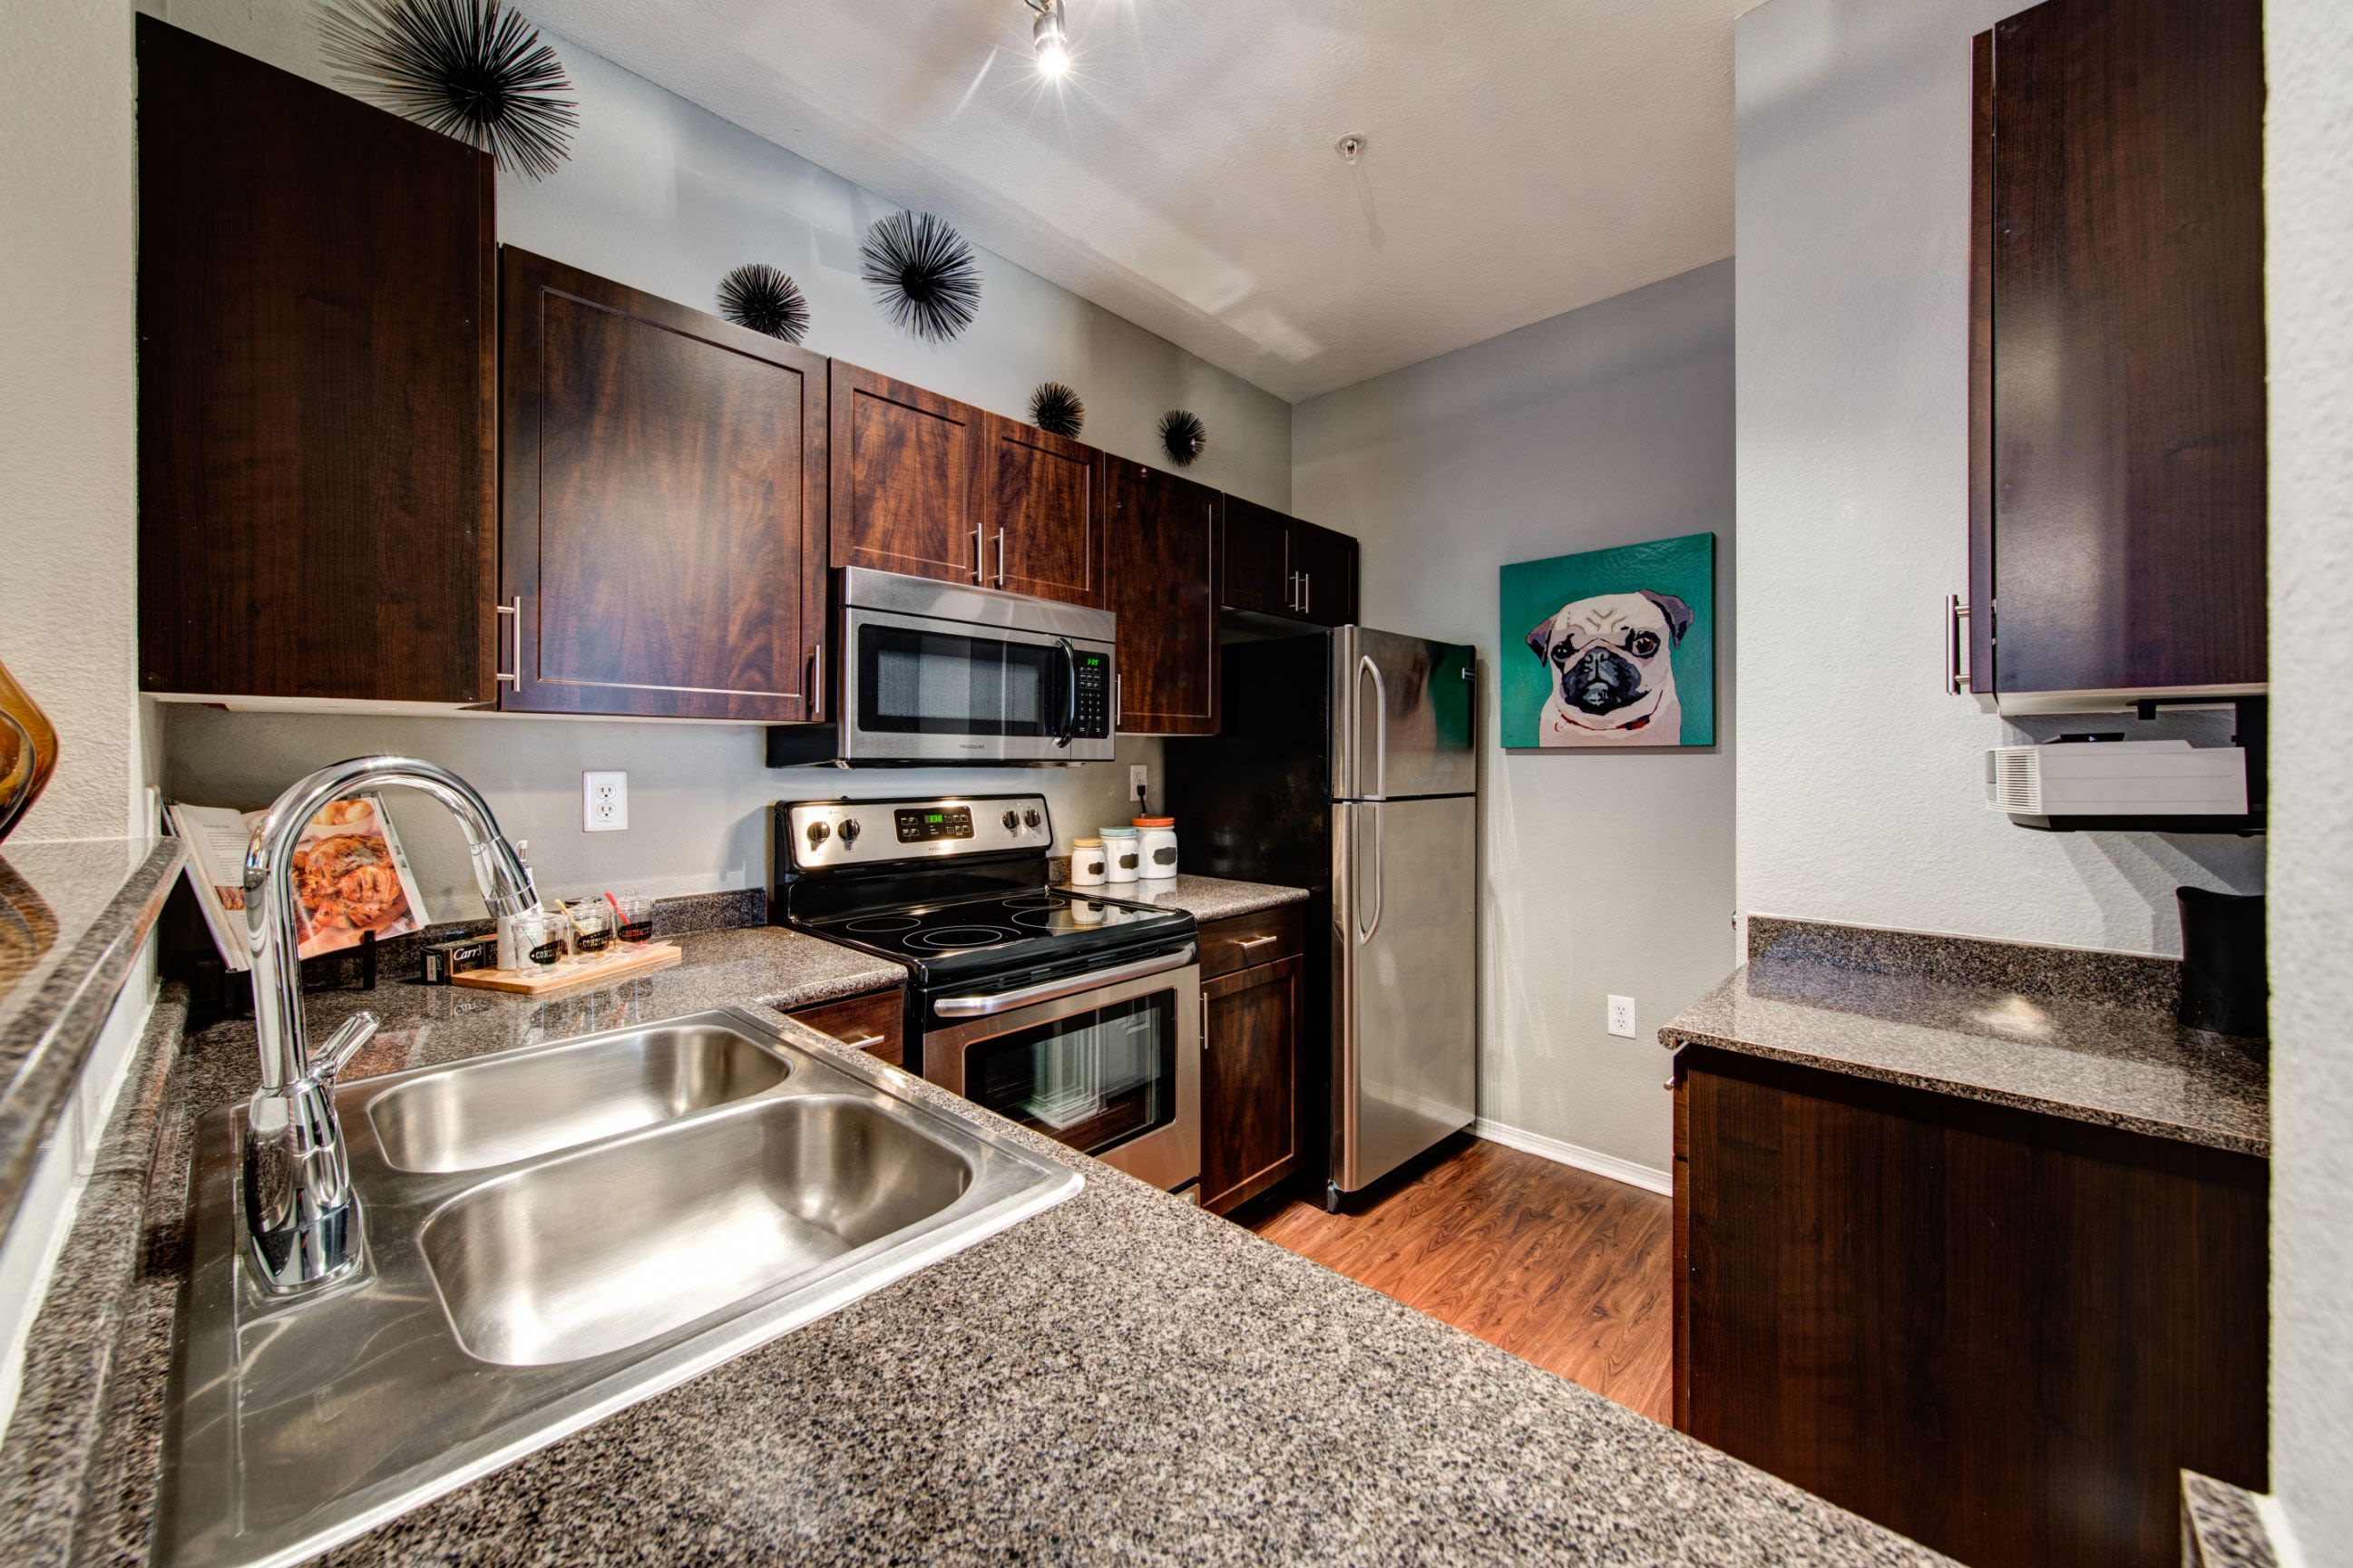 Spacious kitchen with stainless steel appliances at Marquis on Gaston in Dallas, Texas